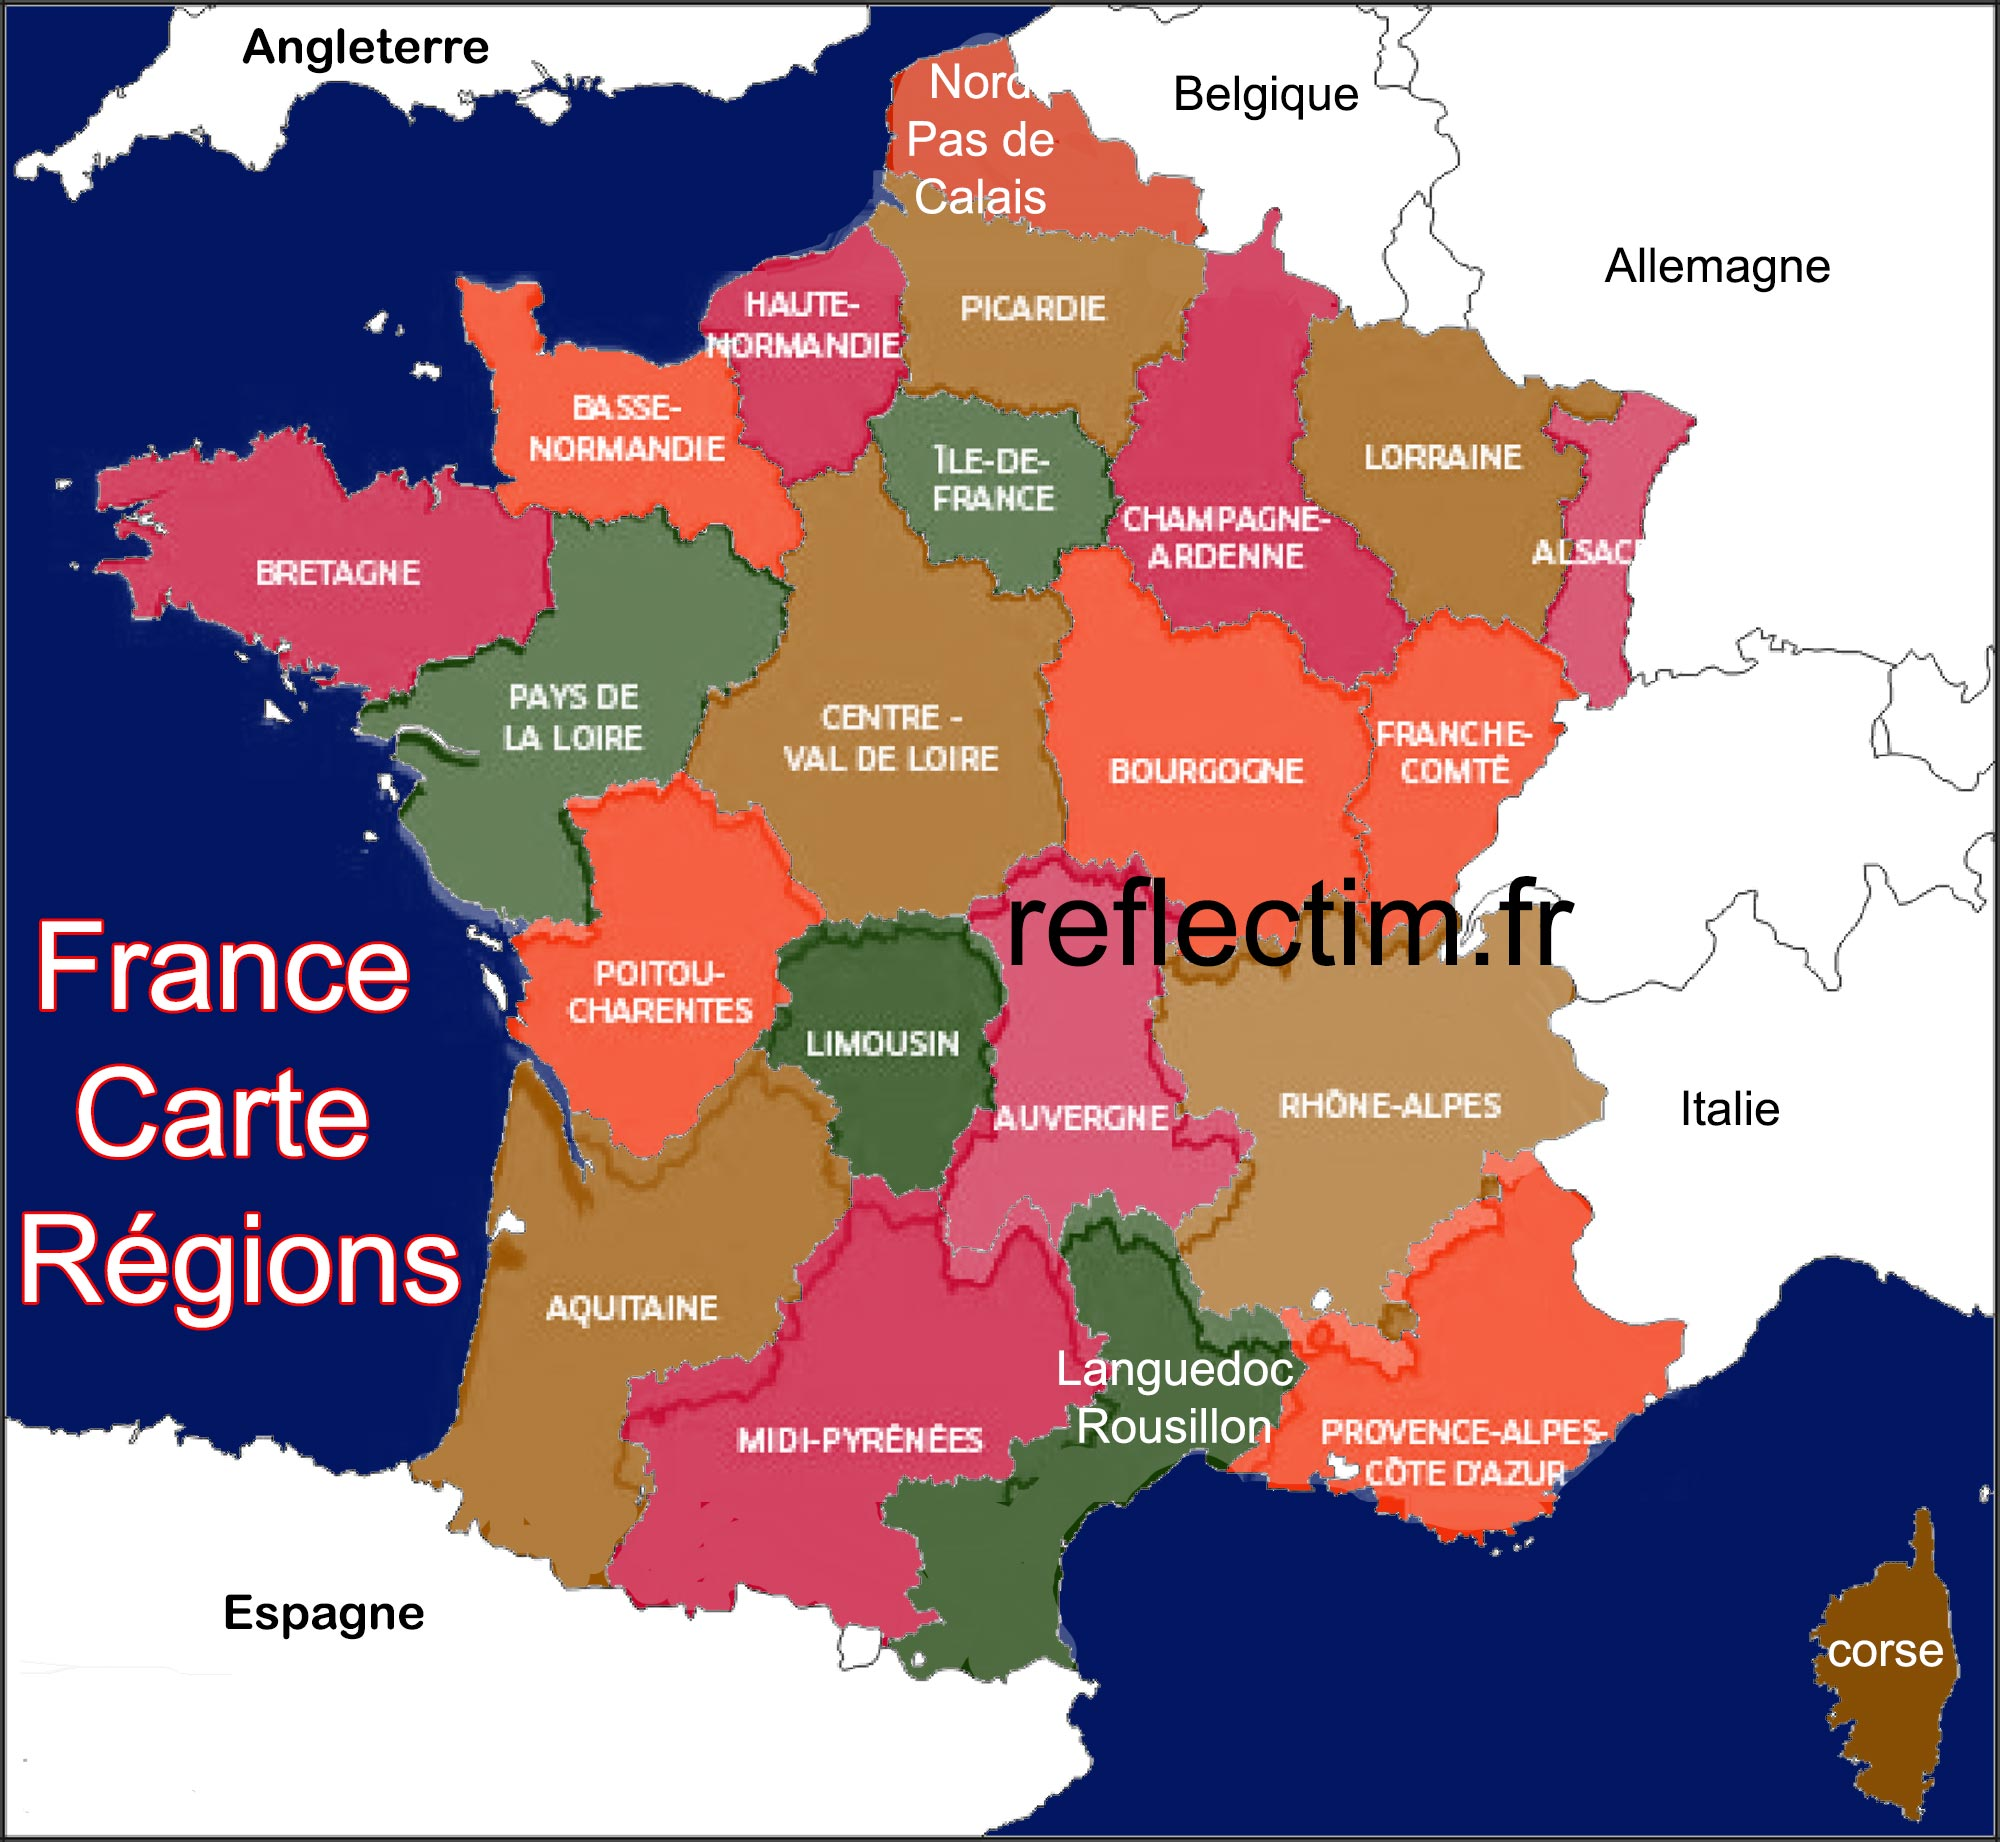 France carte région